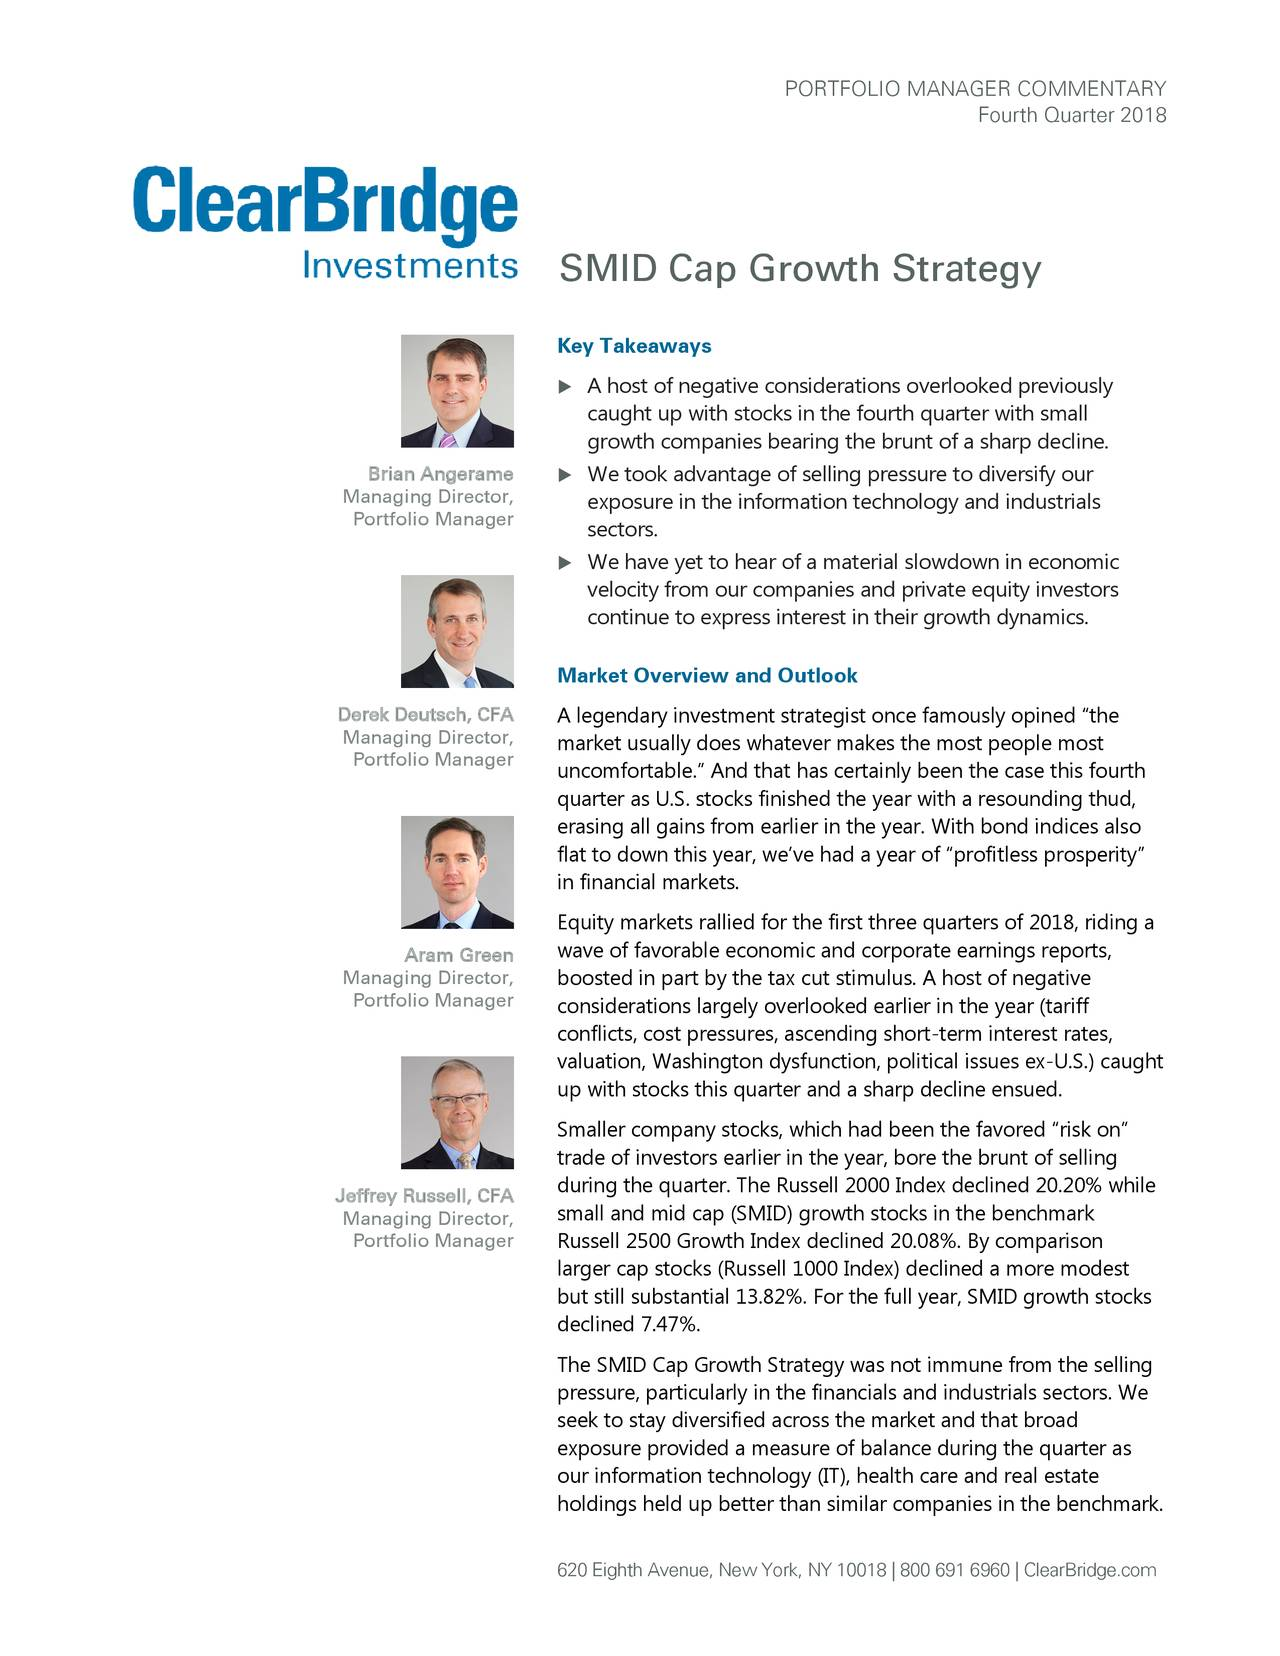 "Fourth Quarter 2018 SMID Cap Growth Strategy Key Takeaways  A host of negative considerations overlooked previously caught up with stocks in the fourth quarter with small growth companies bearing the brunt of a sharp decline . Brian Angerame  We took advantage of selling pressure to diversify our Managing Director, exposure in the information technology and industrials Portfolio Manager sectors.  We have yet to hear of a material slowdown in economic velocity from our companies and private equity investors continue to express interes t in their growth dynamics . Market Overview and Outlook Derek Deutsch, CFA A legendary investment strategist once famously opined ""the Managing Director, market usually does whatever makes the most people most Portfolio Manager uncomfortable."" And that has certainly been the case this fourth quarter as U.S. stocks finished the year with a resounding thud, erasing all gains from earlier in the year. With bond indices also flat to down this year, we've had a year of ""profitless prosperity"" in financial markets. Equity markets rallied for the first three quarters of 2018, riding a wave of favorable economic and corporate earnings reports, Aram Green Managing Director, boosted in part by the tax cut stimulus. A host of negative Portfolio Manager considerations largely overlooked earlier in the year (tariff conflicts, cost pressures, ascending short-term interest rates, valuation, Washington dysfunction, political issues ex-U.S.) caught up with stocks this quarter and a sharp decline ensued. Smaller company stocks, which had been the favored ""risk on"" trade of investors earlier in the year, bore the brunt of selling Jeffrey Russell, CFA during the quarter. The Russell 2000 Index declined 20.20% while Managing Director, small and mid cap (SMID) growth stocks in the benchmark Portfolio Manager Russell 2500 Growth Index declined 20.08%. By comparison larger cap stocks (Russell 1000 Index) declined a more modest but still substantial 13.82%. For the full year, SMID growth stocks declined 7.47%. The SMID Cap Growth Strategy was not immune from the selling pressure, particularly in the financials and industrials sectors. We seek to stay diversified across the market and that broad exposure provided a measure of balance during the quarter as our information technology (IT), health care and real estate holdings held up better than similar companies in the benchmark. 620 Eighth Avenue, New York, NY 10018 